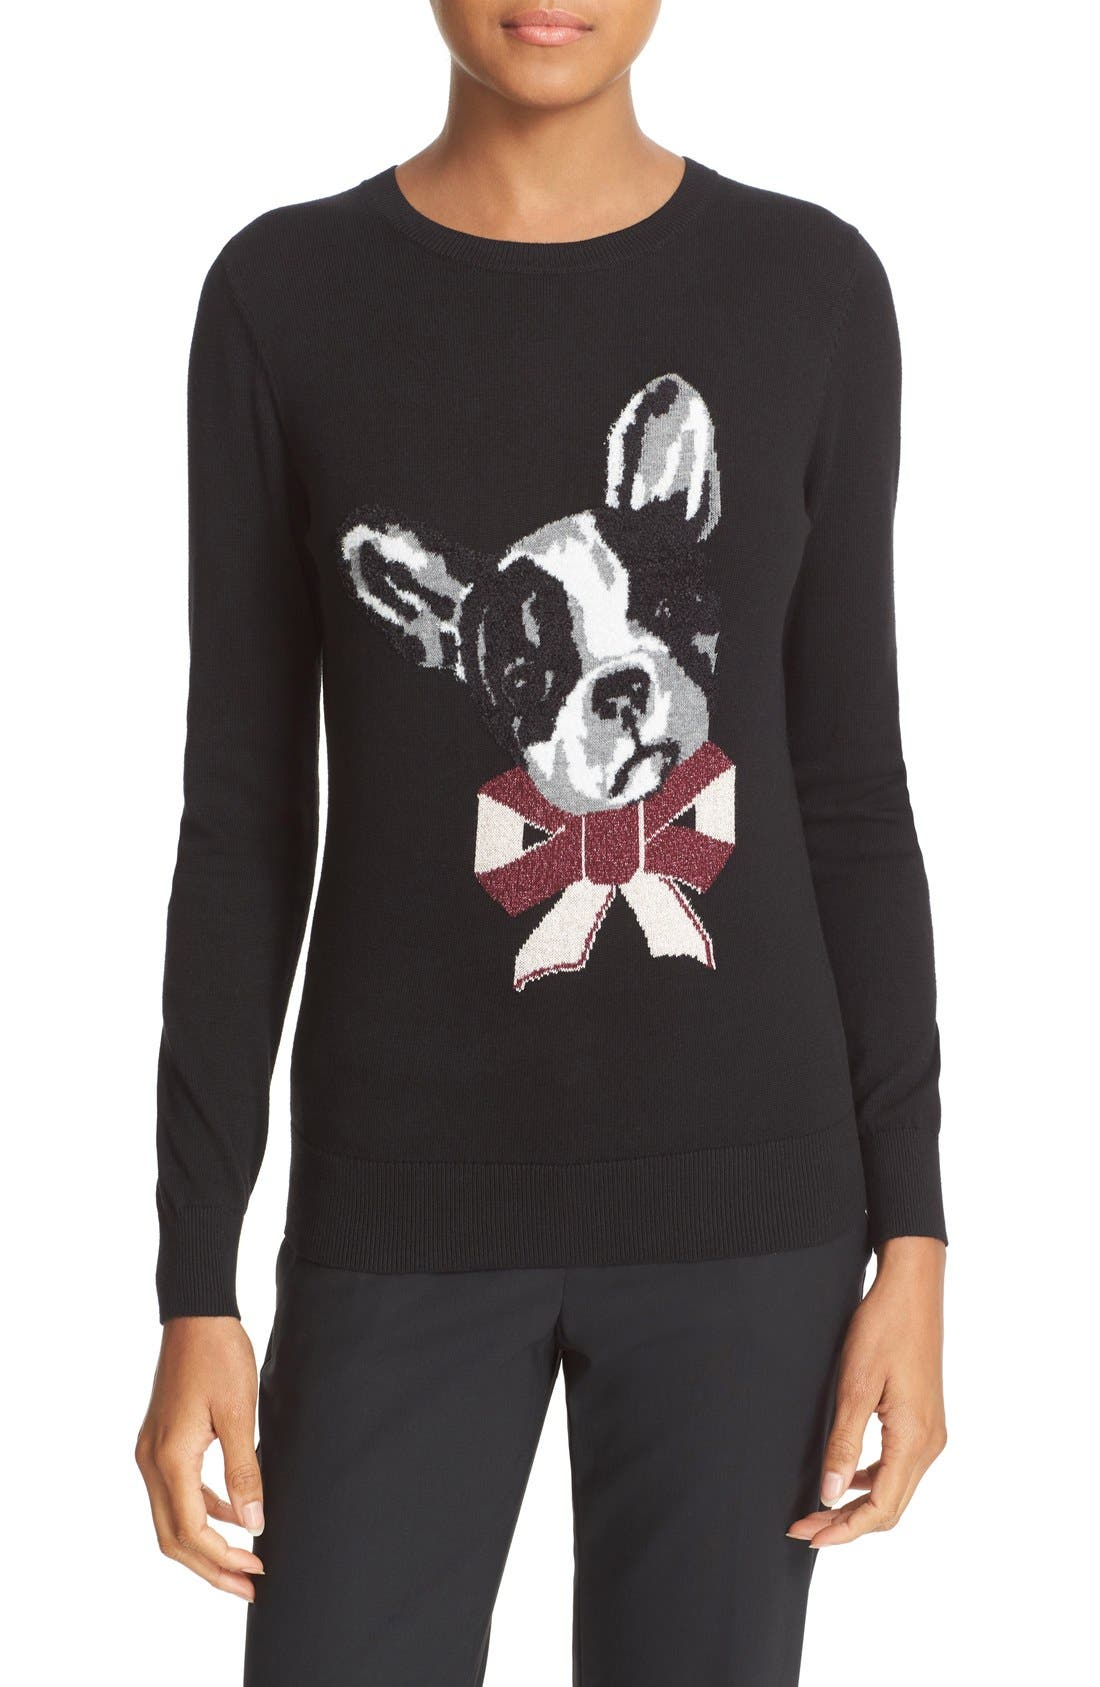 Main Image - Ted Baker London Henie Merry Woofmas Sweater